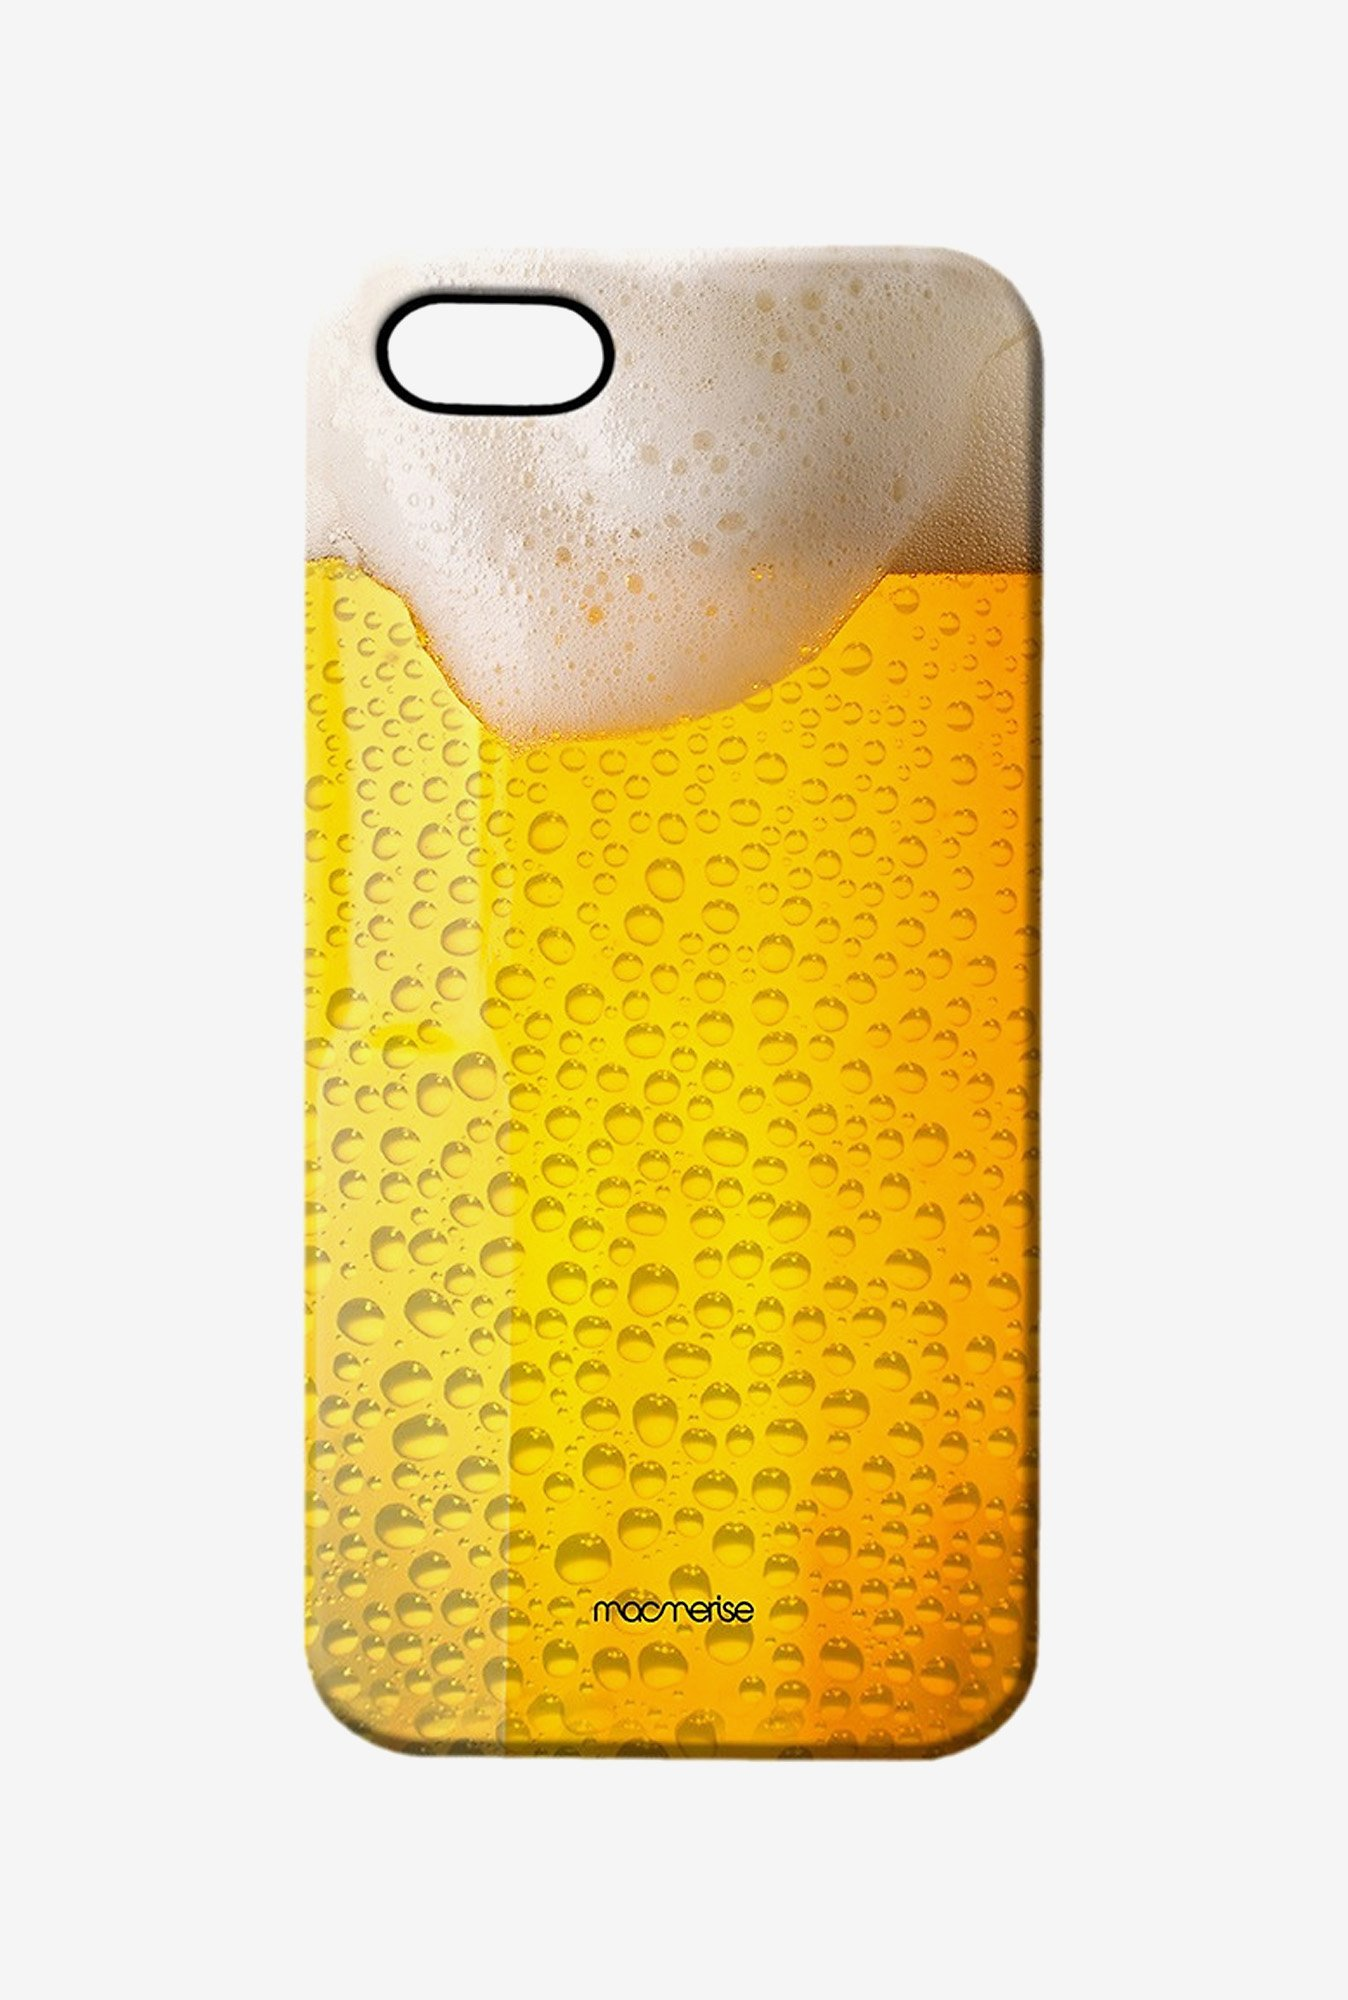 Macmerise Chug It Pro Case for iPhone 5/5S